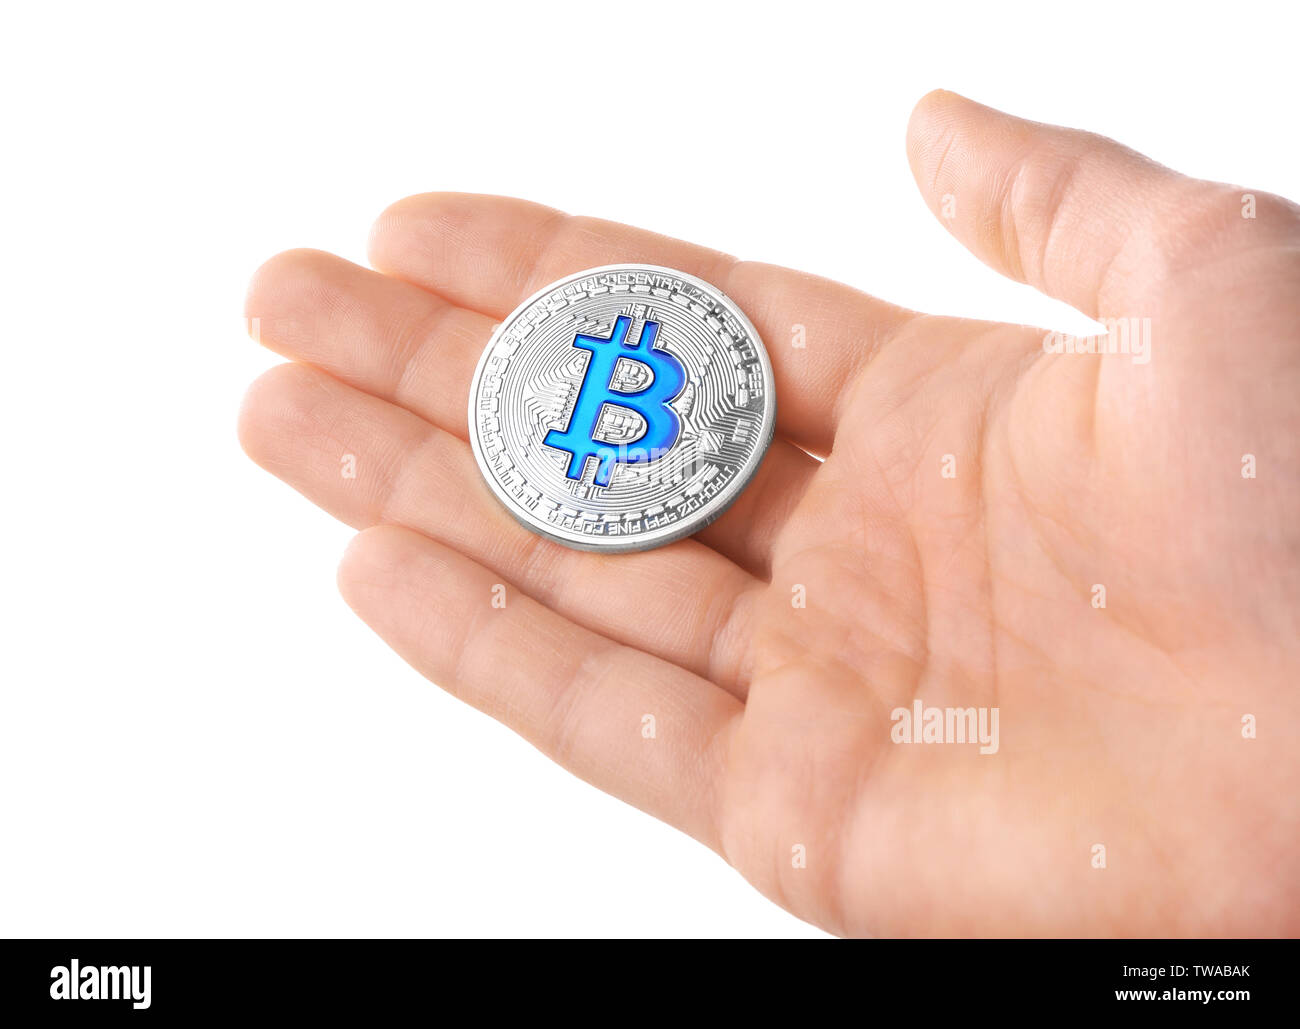 Man holding silver bitcoin on white background - Stock Image